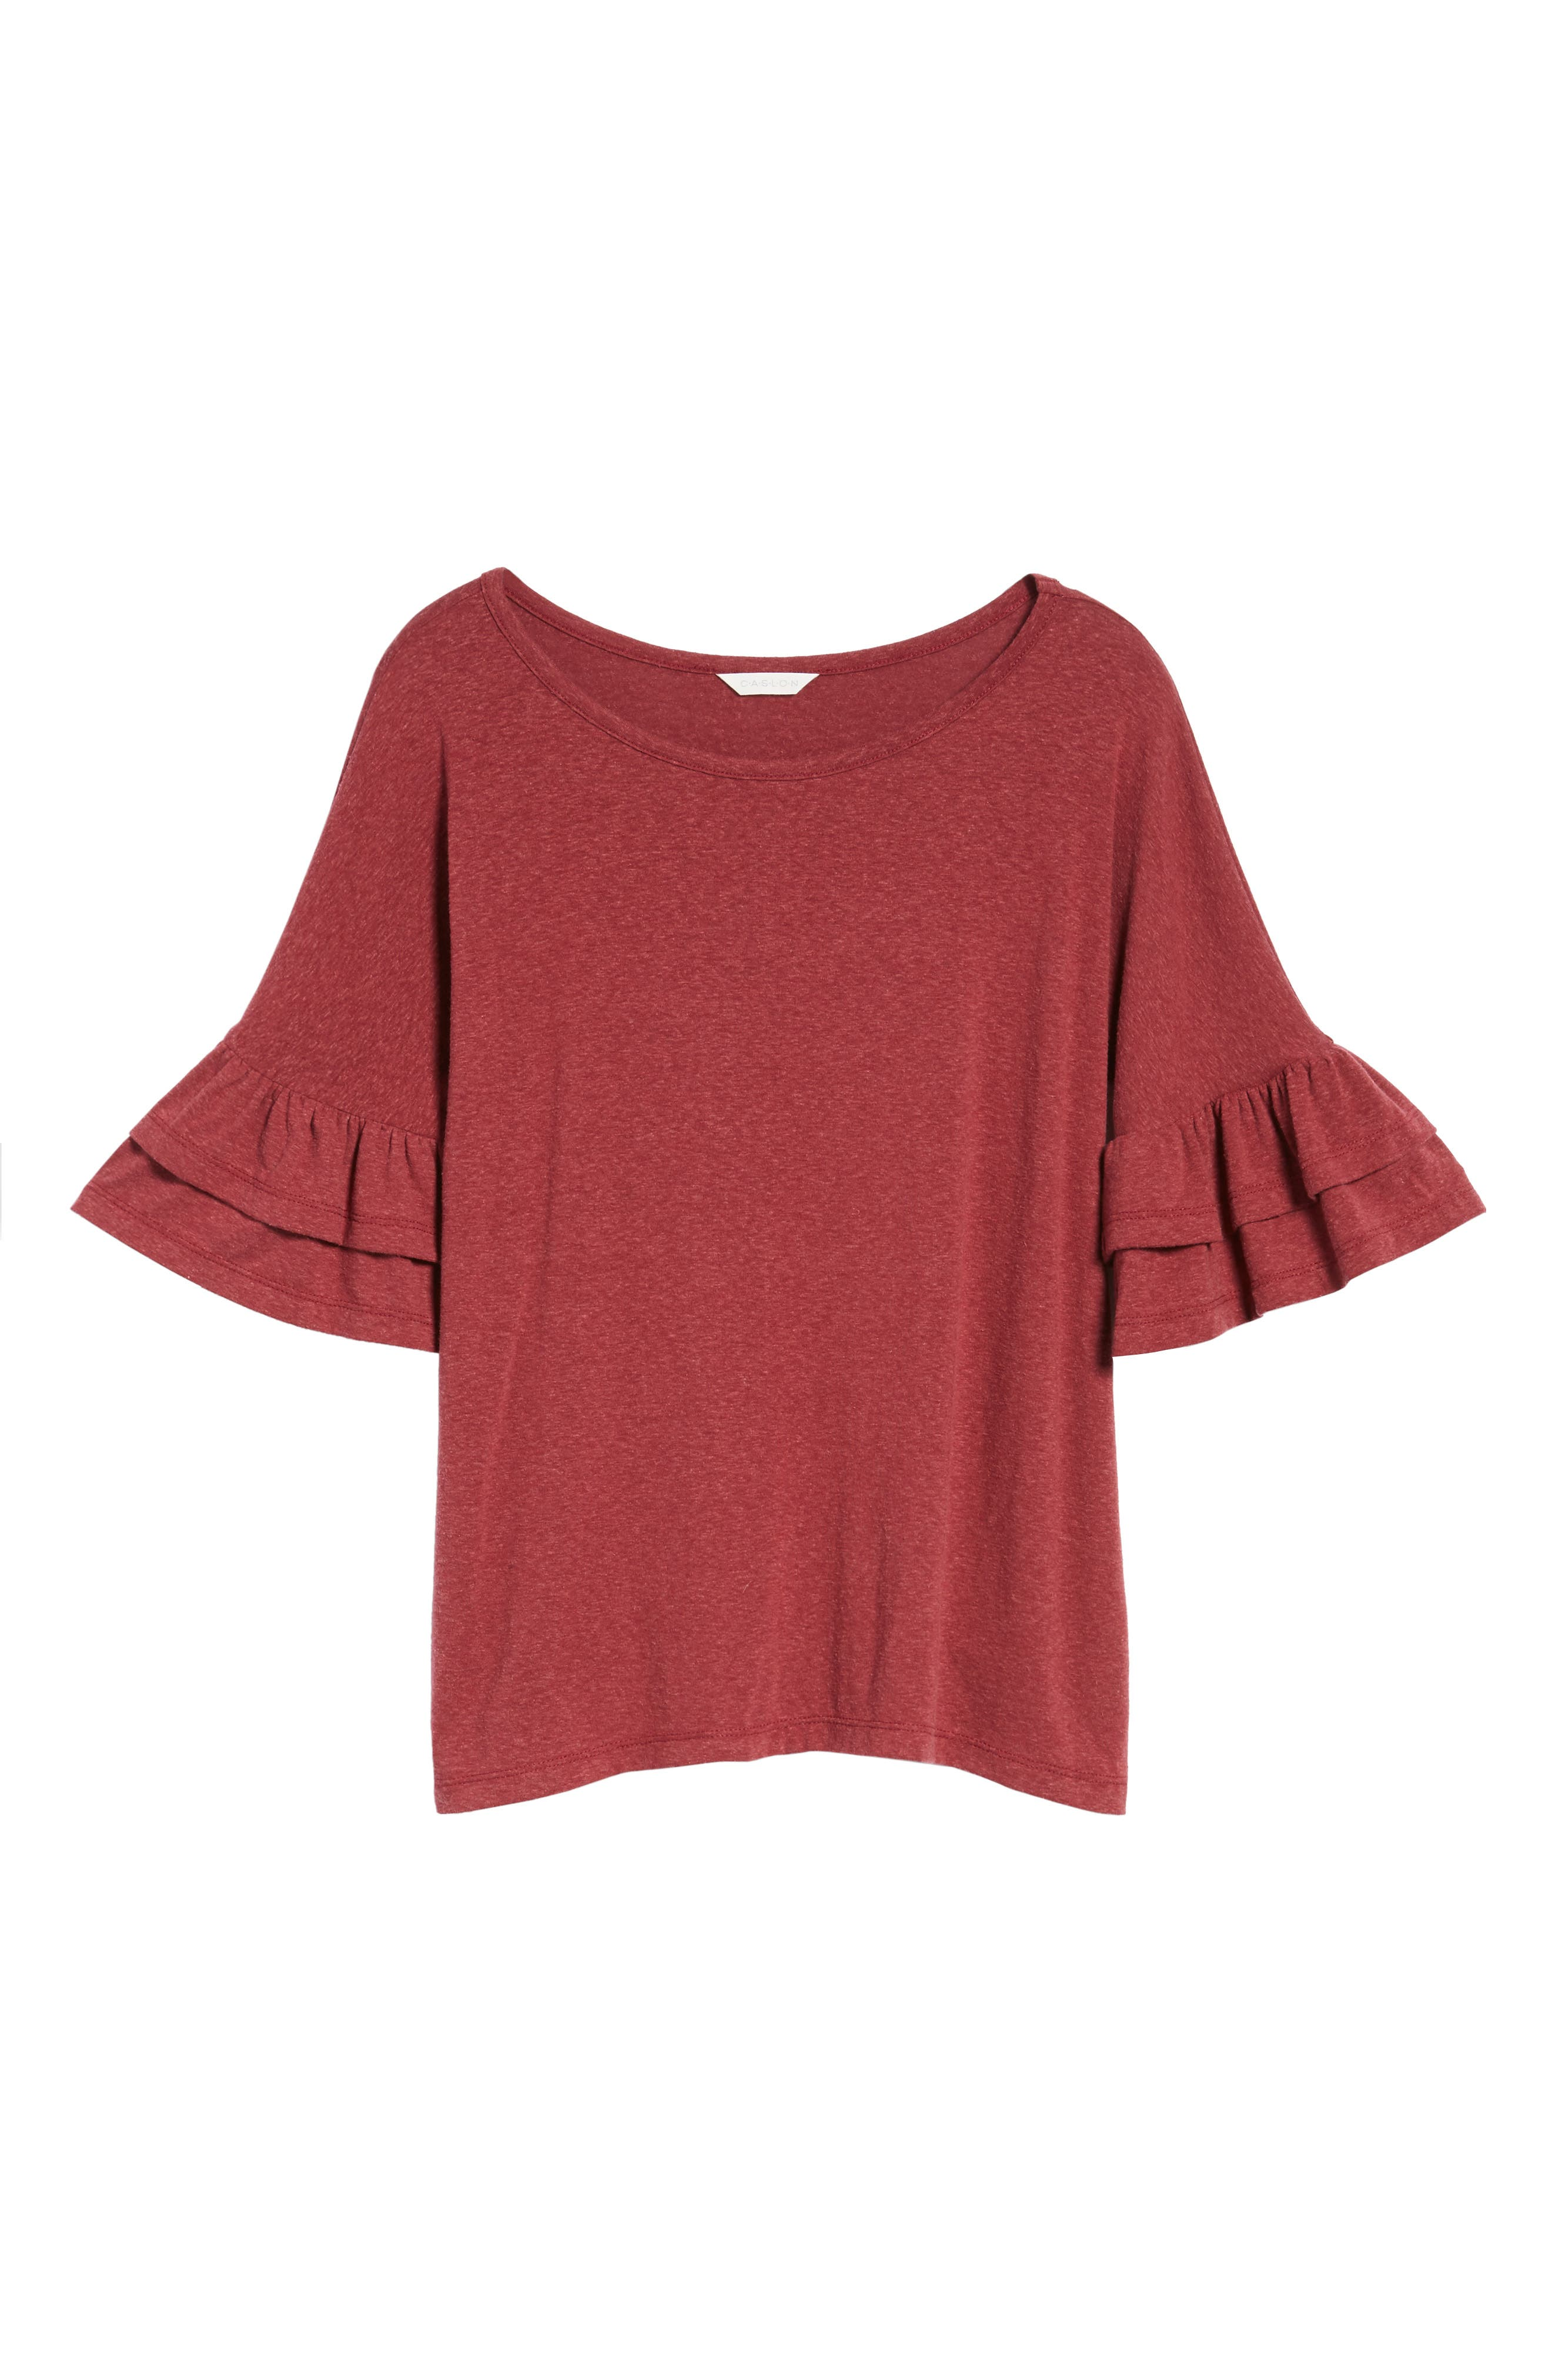 Tiered Bell Sleeve Tee,                             Alternate thumbnail 6, color,                             600